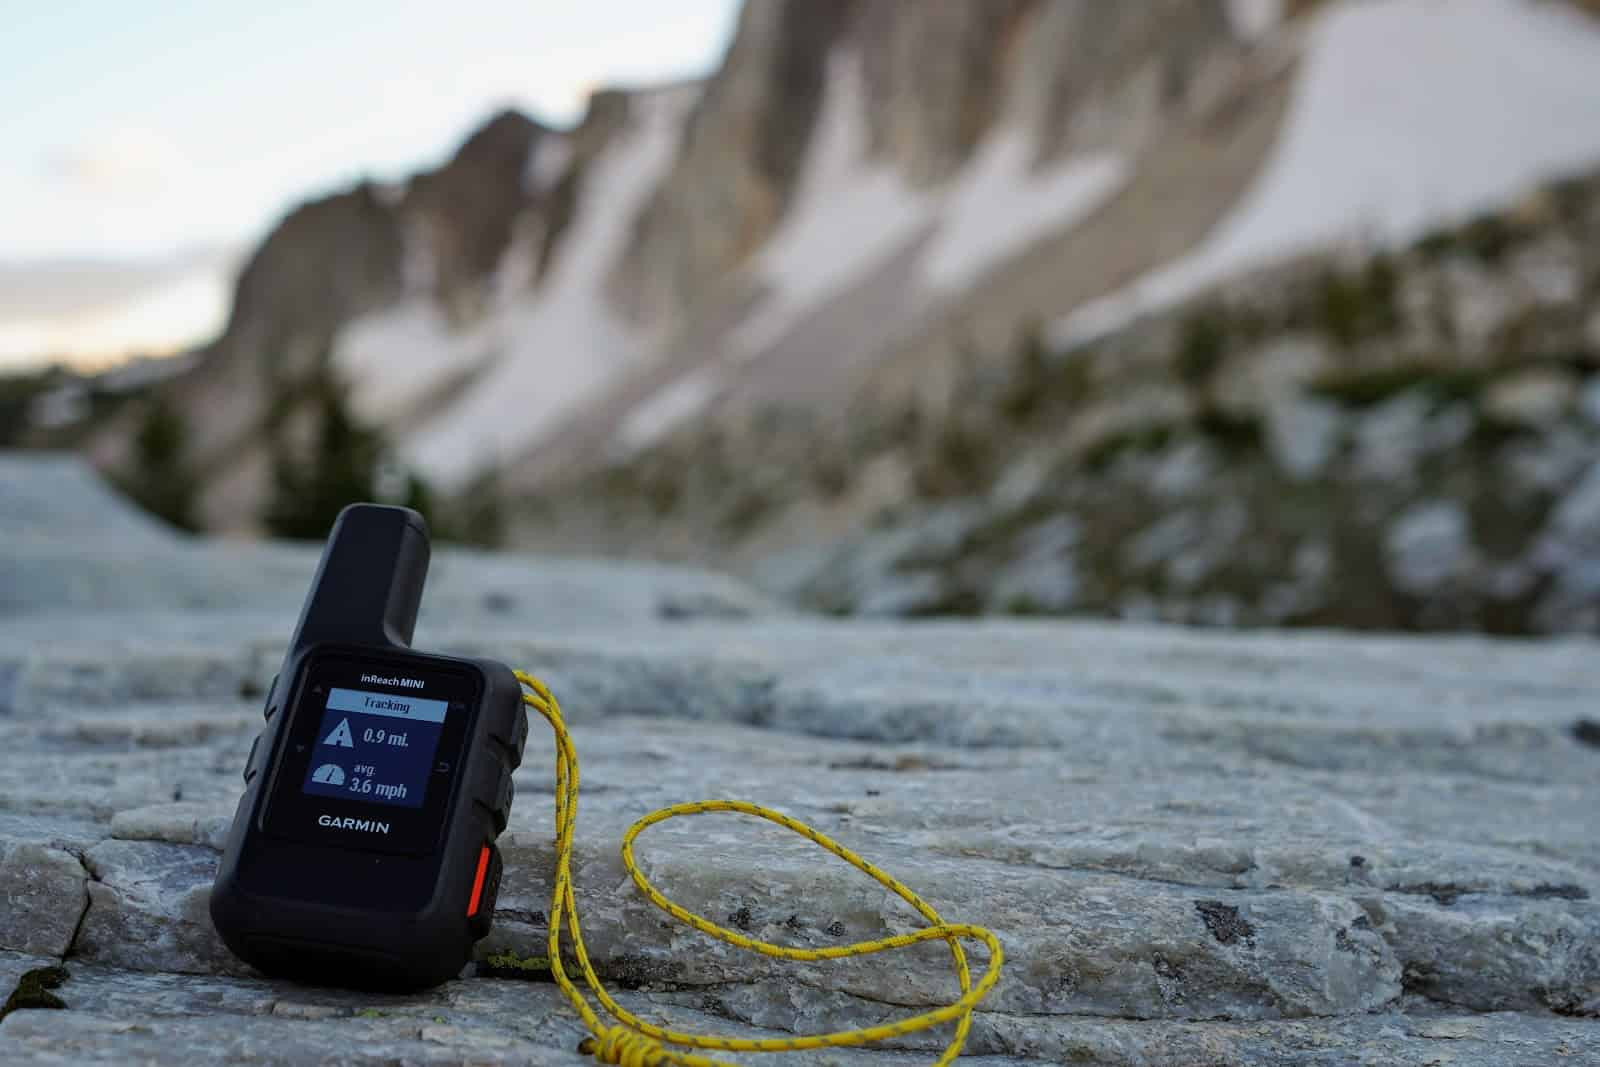 garmin inreach mini tracking 1